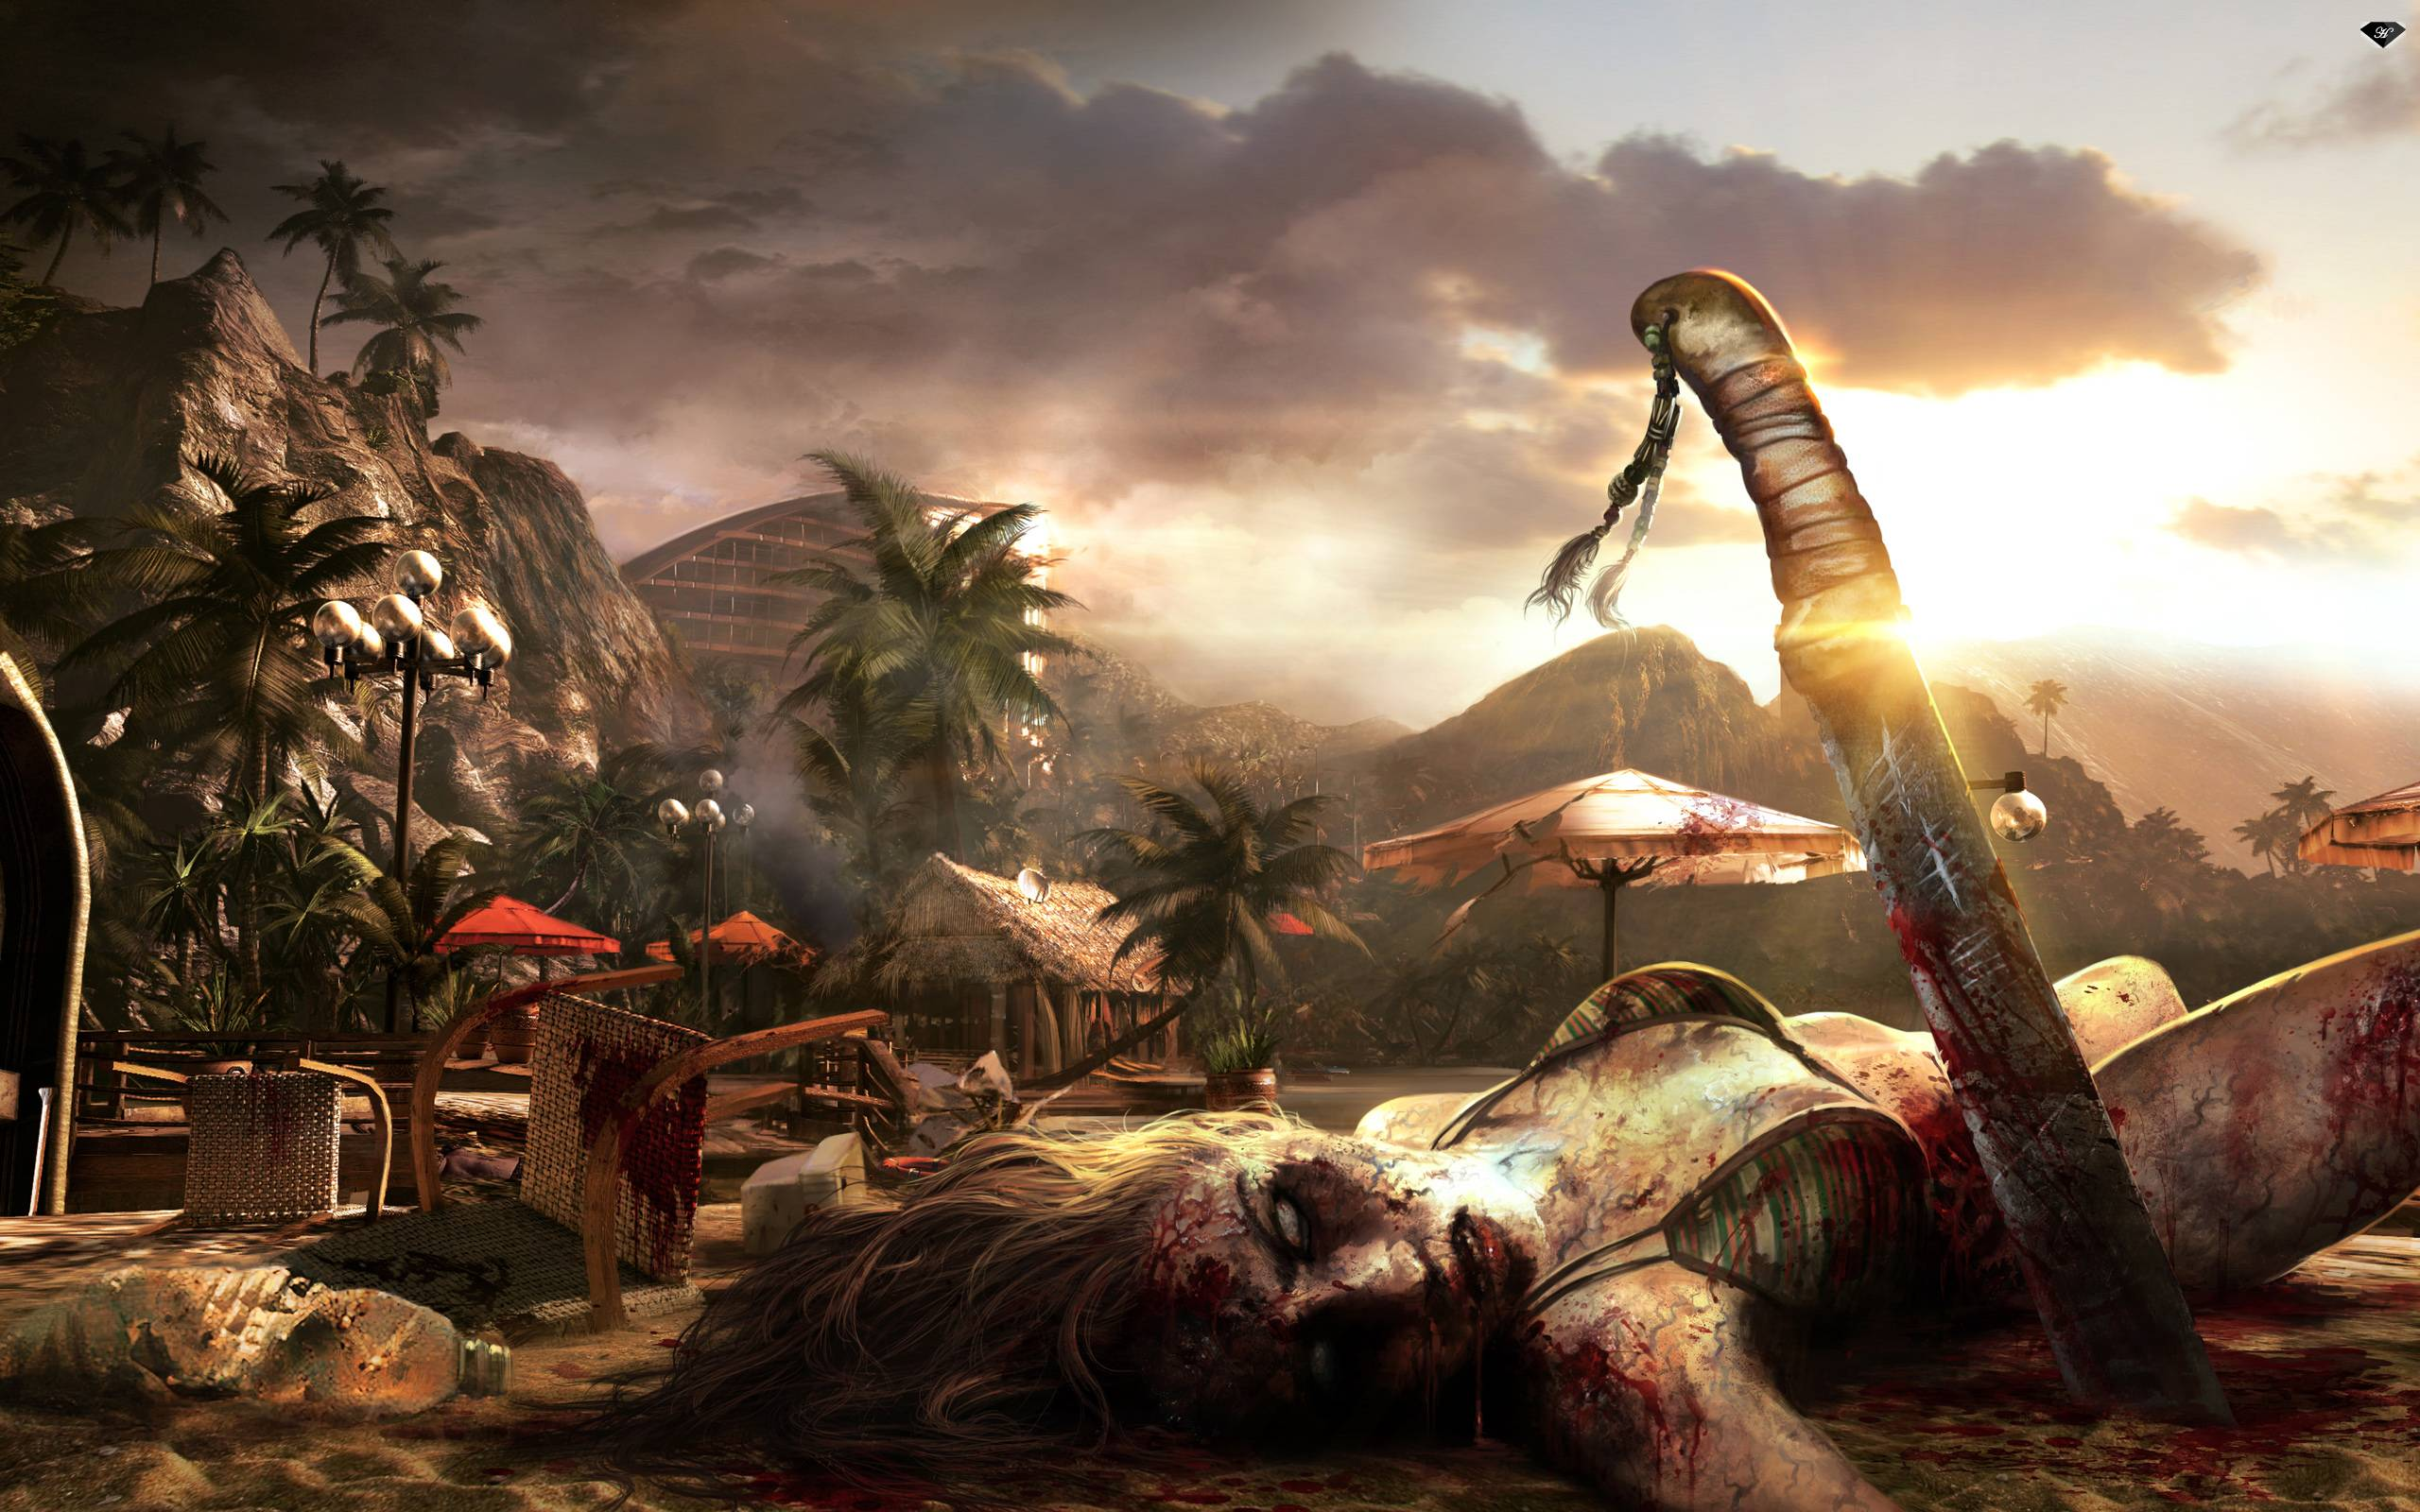 Dead Love Girl Wallpaper : Dead Island Wallpapers - Wallpaper cave